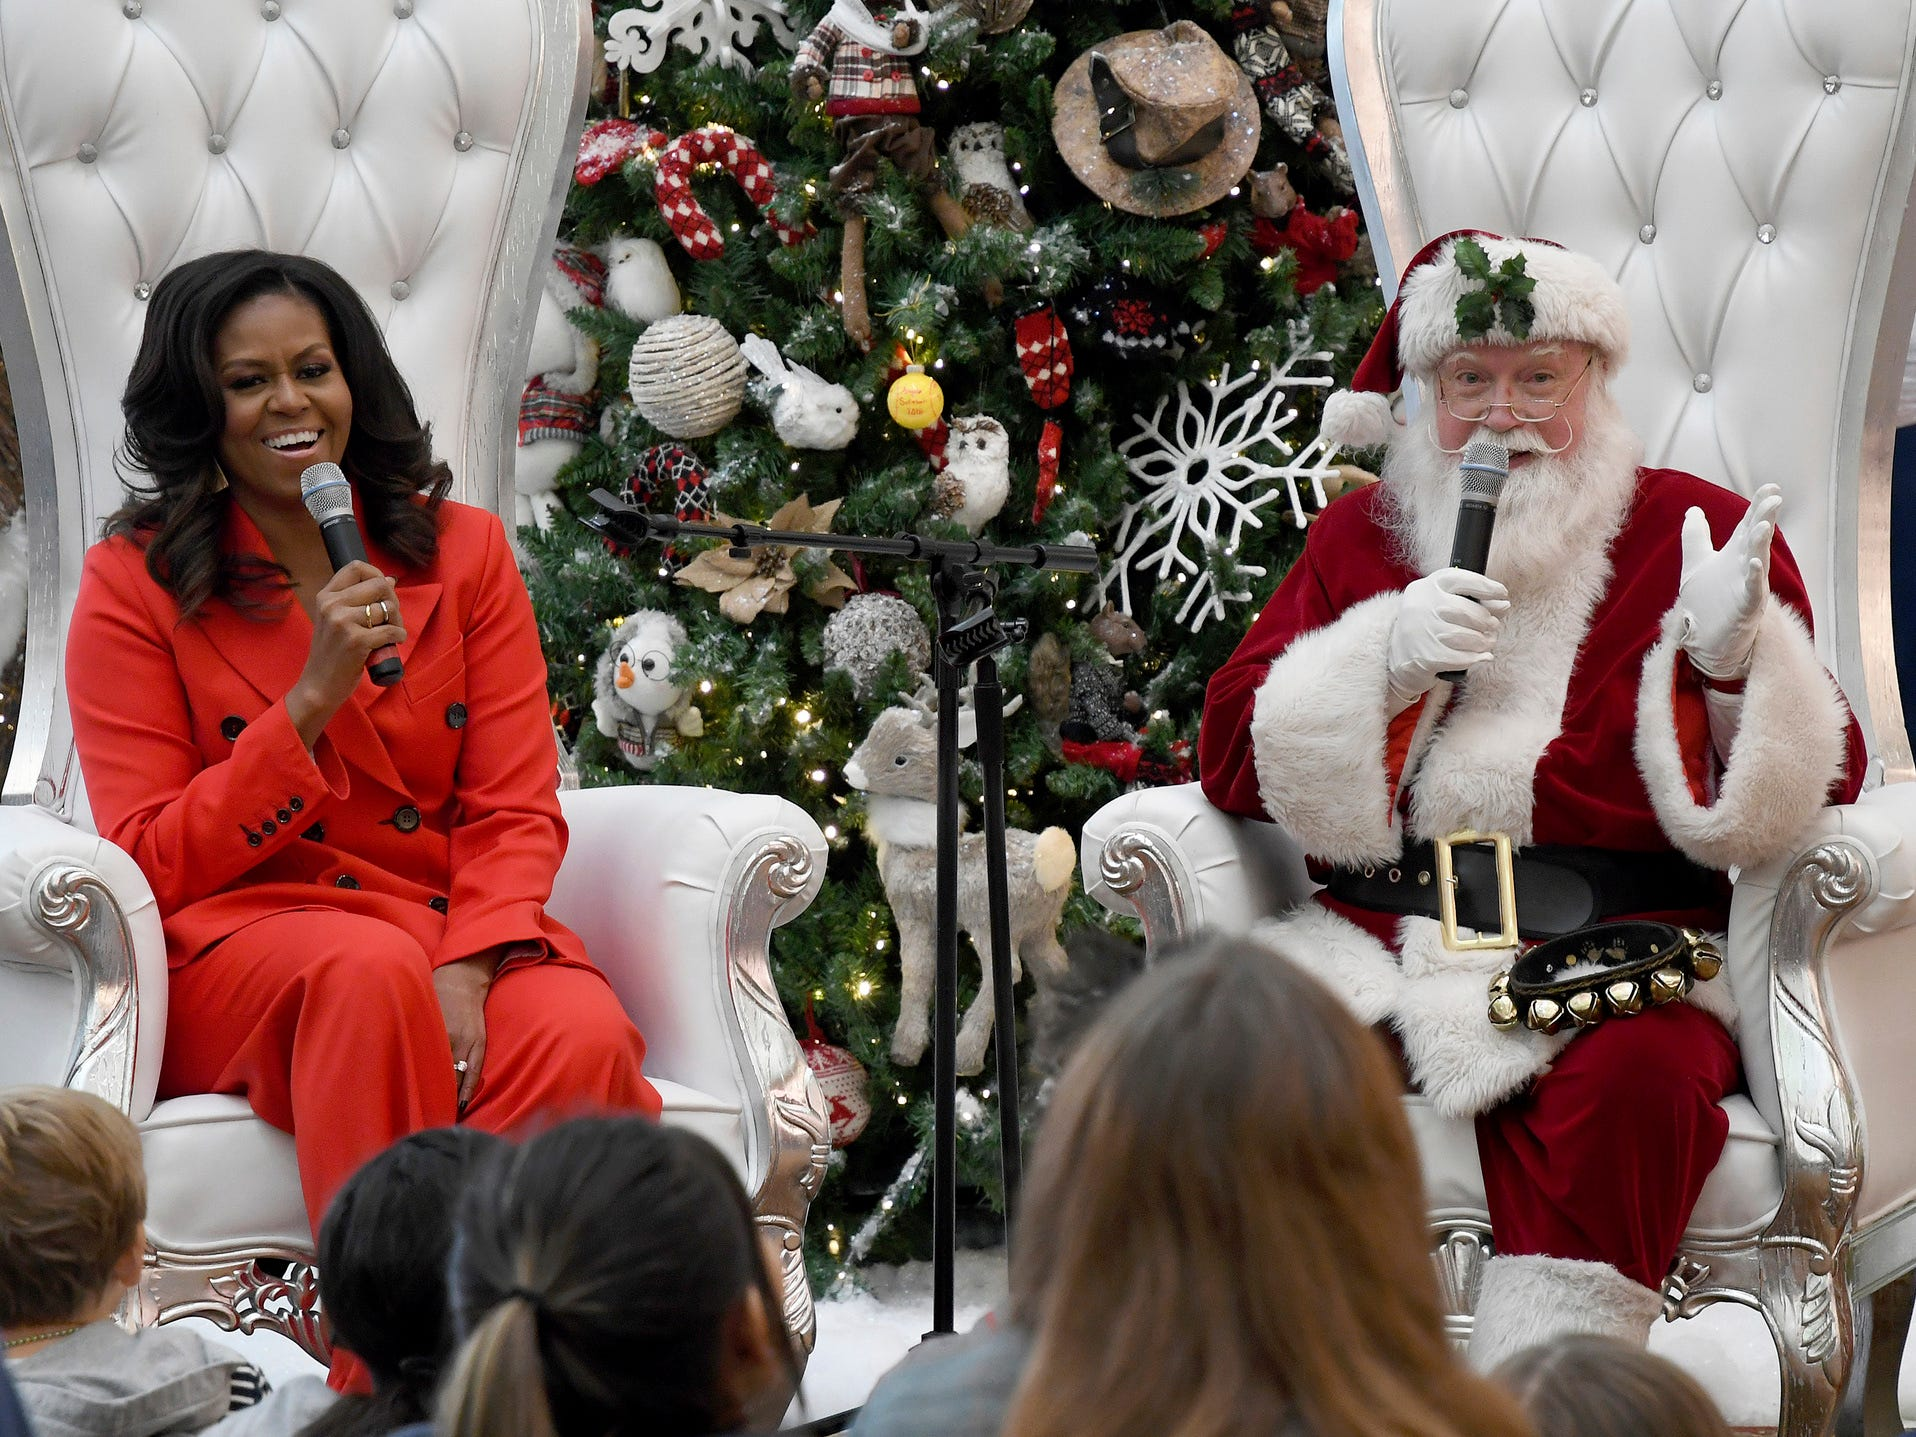 """Santa Claus and former first lady Michelle Obama answer questions after Obama read """"The Night Before Christmas"""" to a group of patients at Children's Hospital Colorado in Aurora, Colo. on Dec. 13, 2018."""